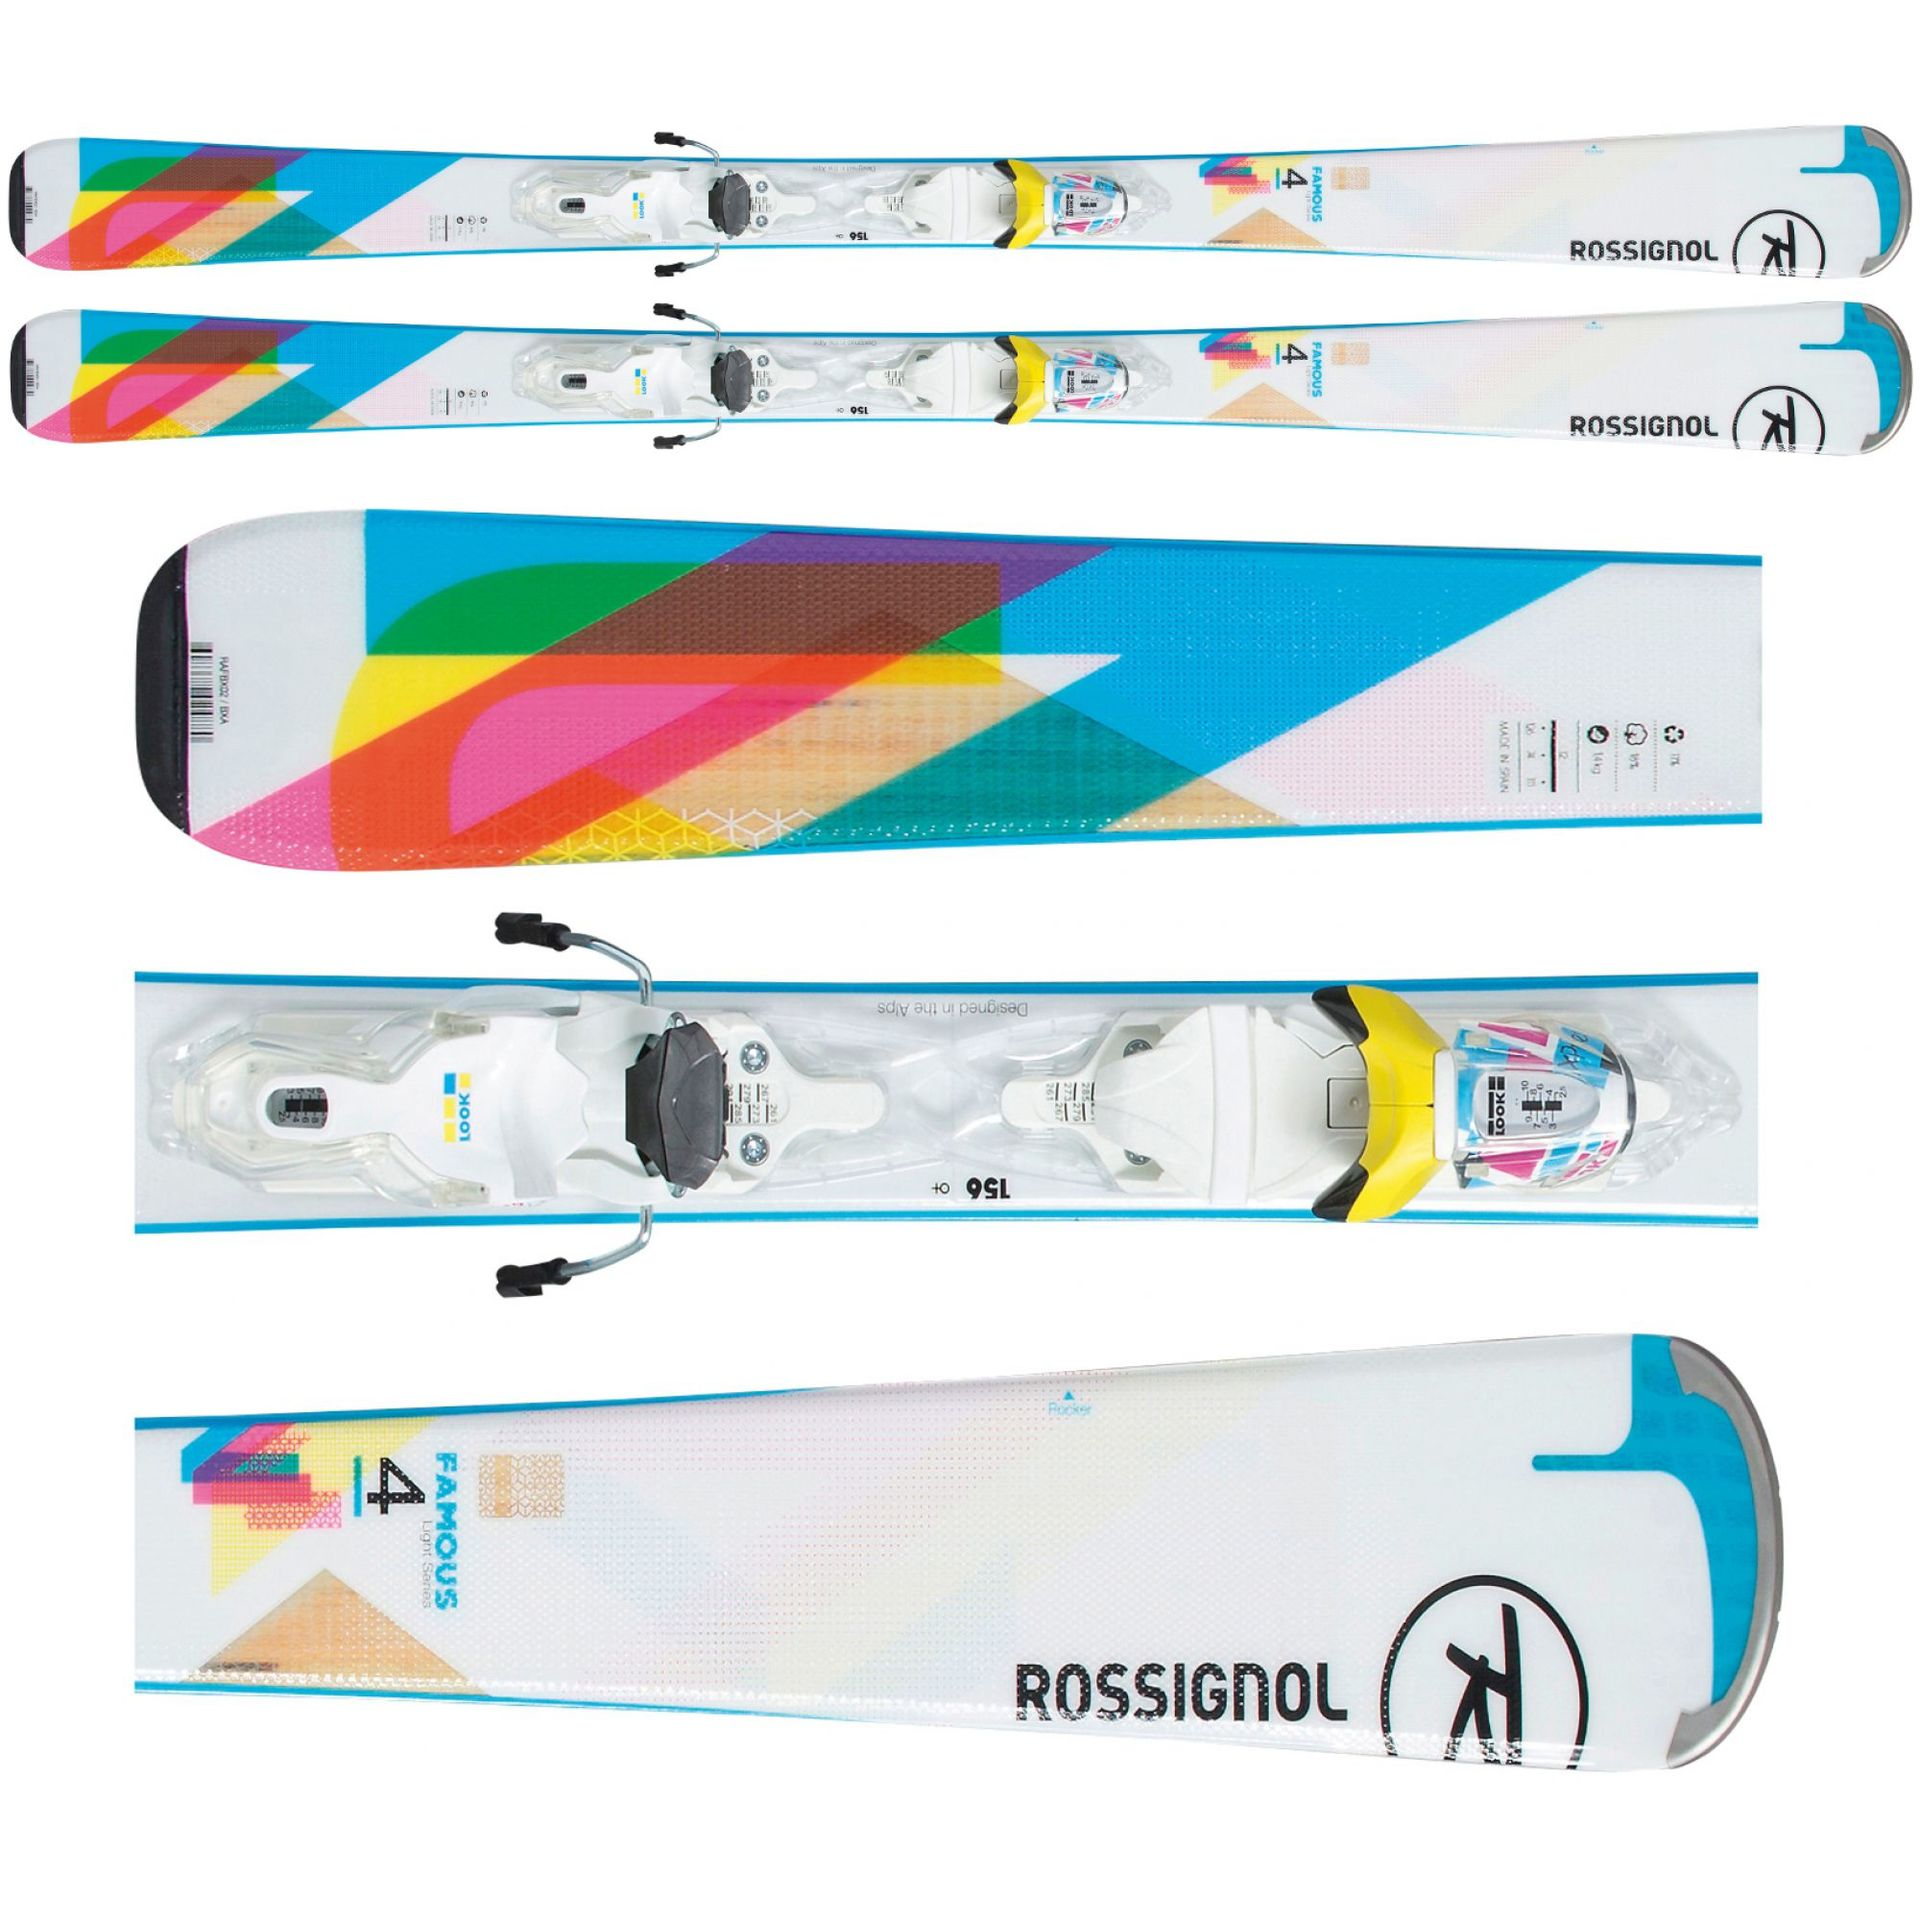 NARTY ROSSIGNOL FAMOUS 4